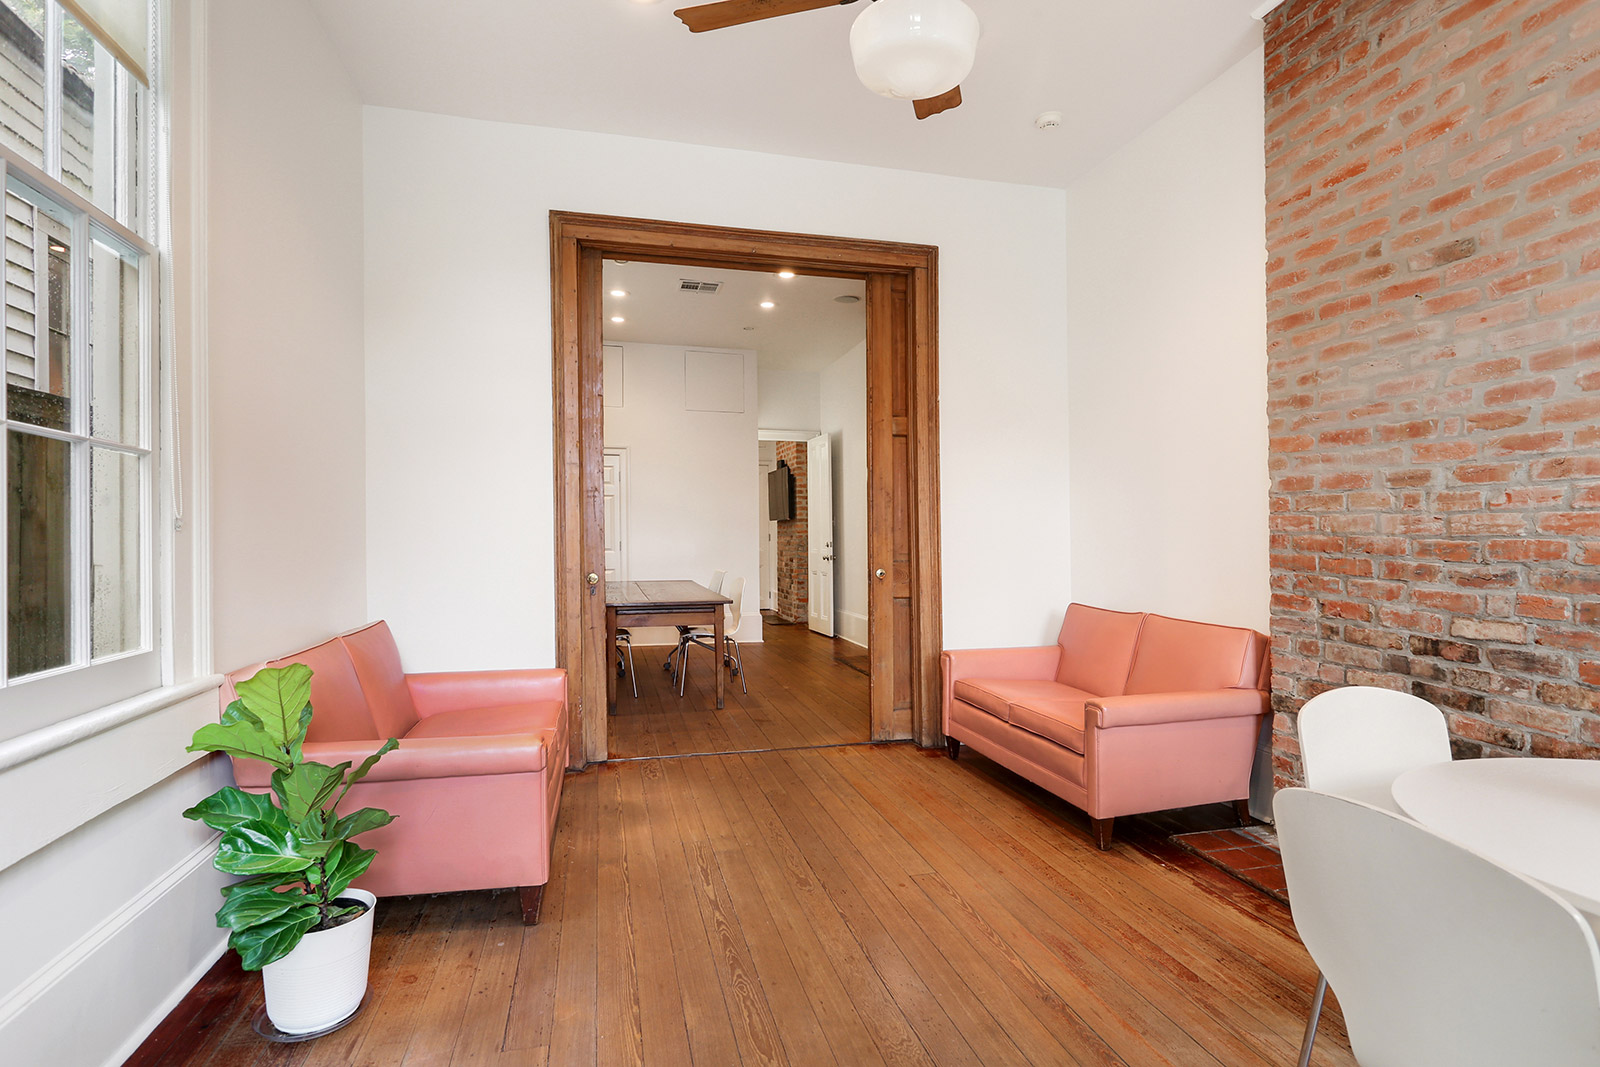 Uptown, Condo, 1 beds, 1.5 baths, $2800 per month New Orleans Rental - devie image_2